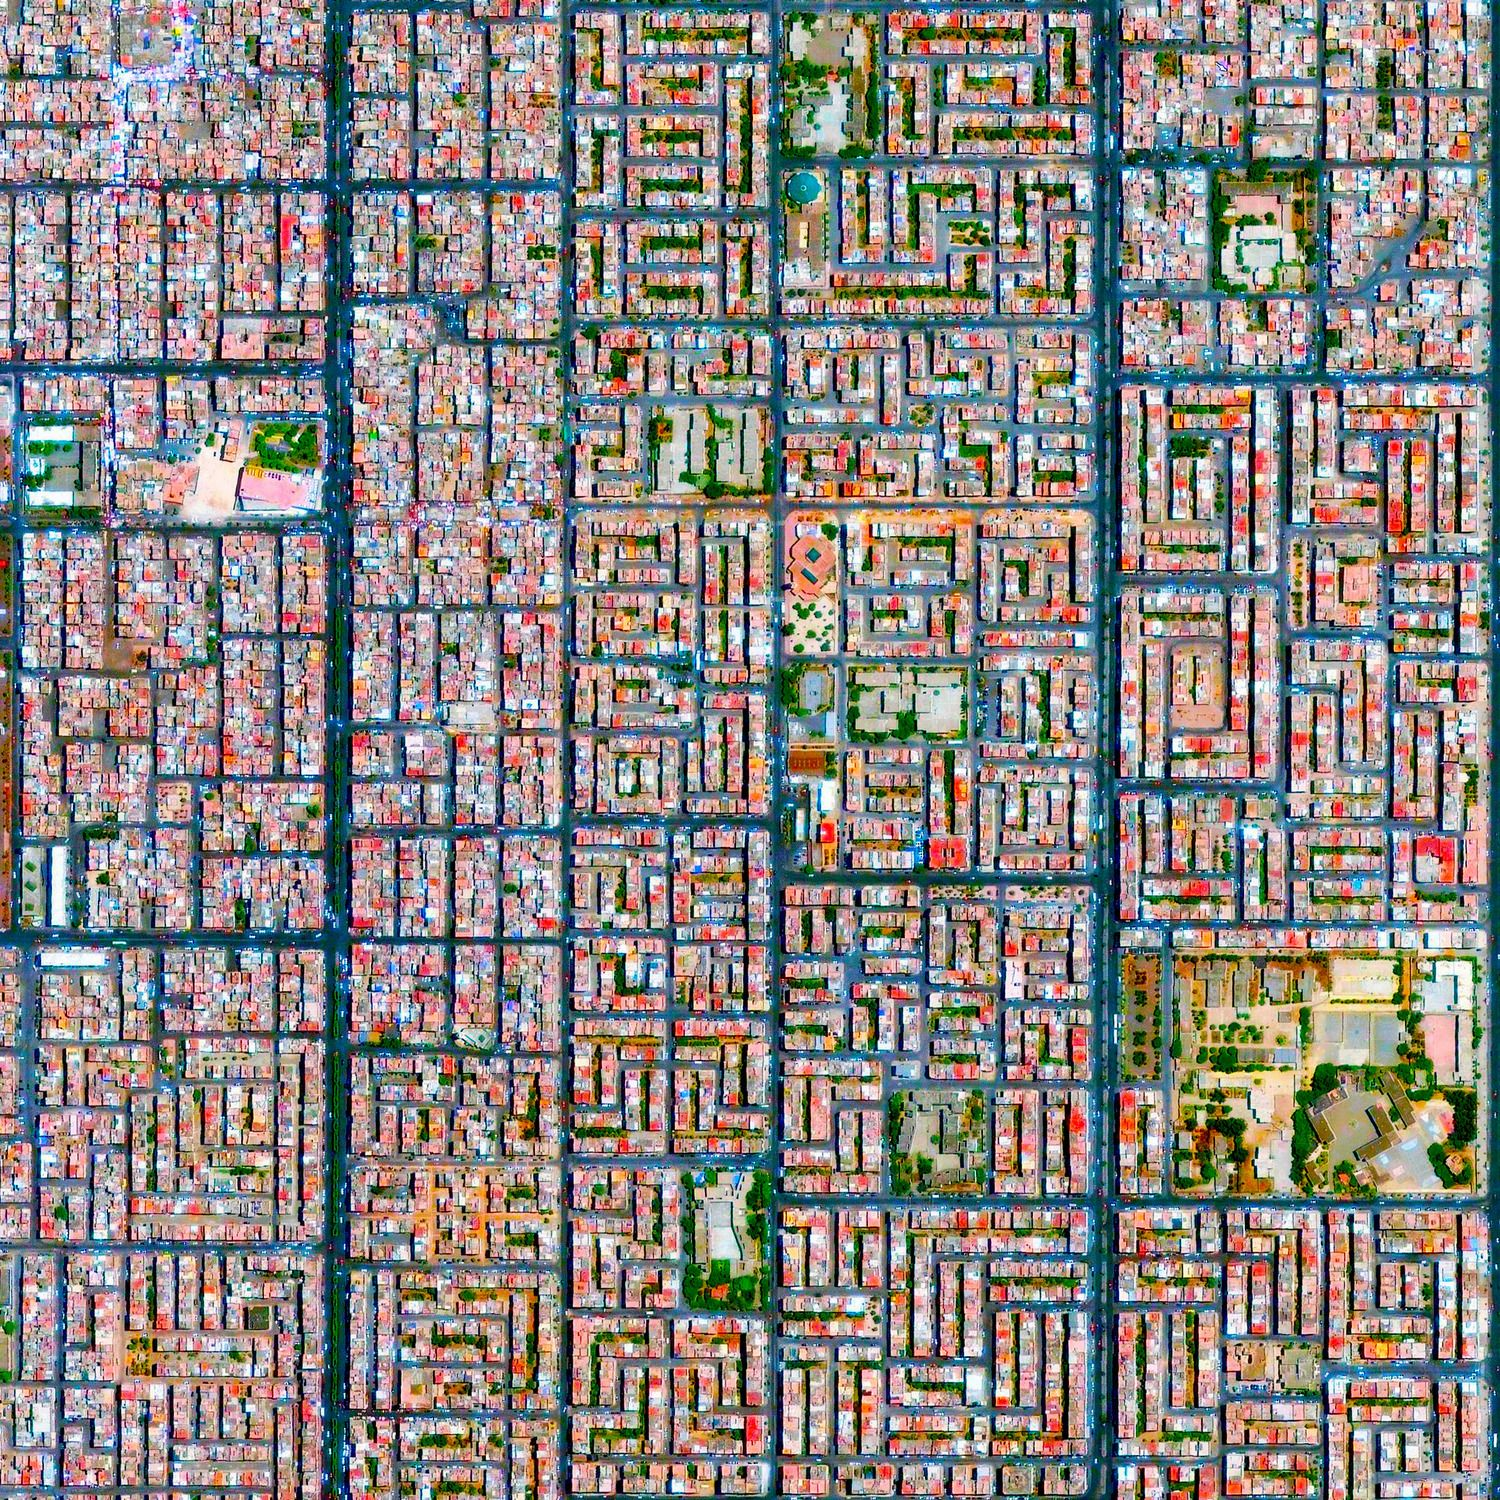 10/8/2015 Casablanca Casablanca, Morocco 33.546145122°, -7.573826684°   Casablanca is the largest city in Morocco with four million residents, accounting for 11% of the entire country. Many officials report that these figure are underestimated and the total population is actually somewhere between 5 and 6 million. This recent surge has occurred because severe droughts have forced many Moroccans to move into urban areas to find new forms of work.